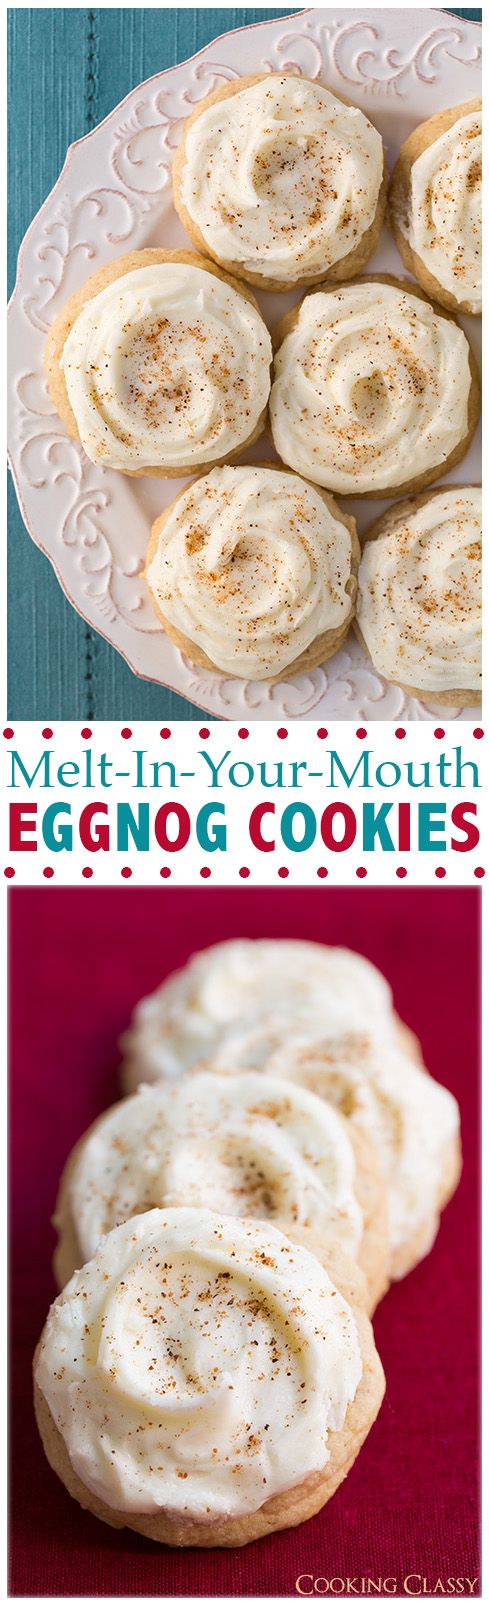 Melt-In-Your-Mouth Eggnog Cookies - Definitely one of my favorite holiday cookies!!